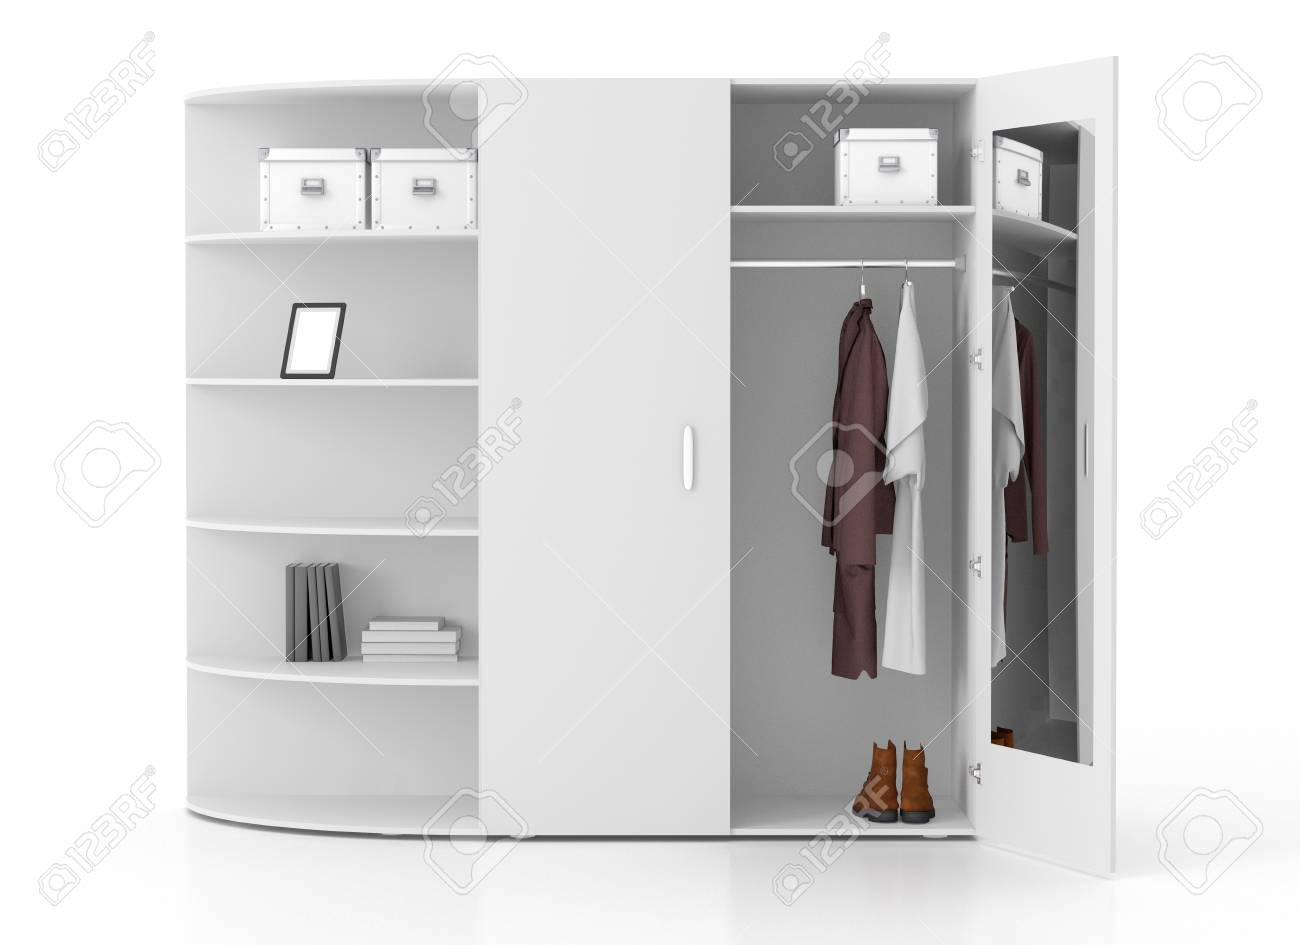 Spiegel Garderobe Stock Photo